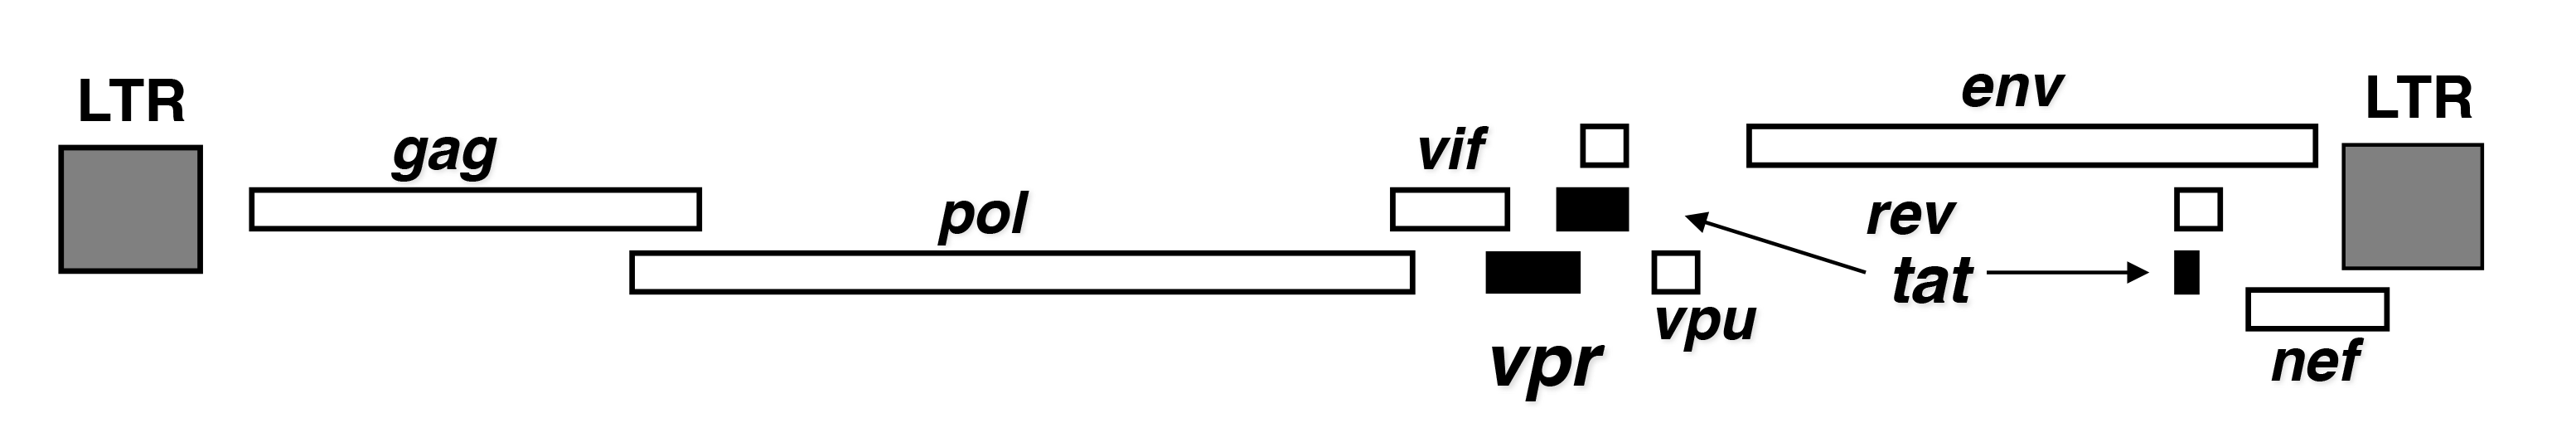 Chapters Archive Page 14 Of 34 Endotext 1966 Mercury Park Lane Wiring Diagram Figure 3 Lineralized Structure The Hiv Genome And Localization Vpr Tat Coding Region Shown In Black Boxes Its 98 Kb Genomic